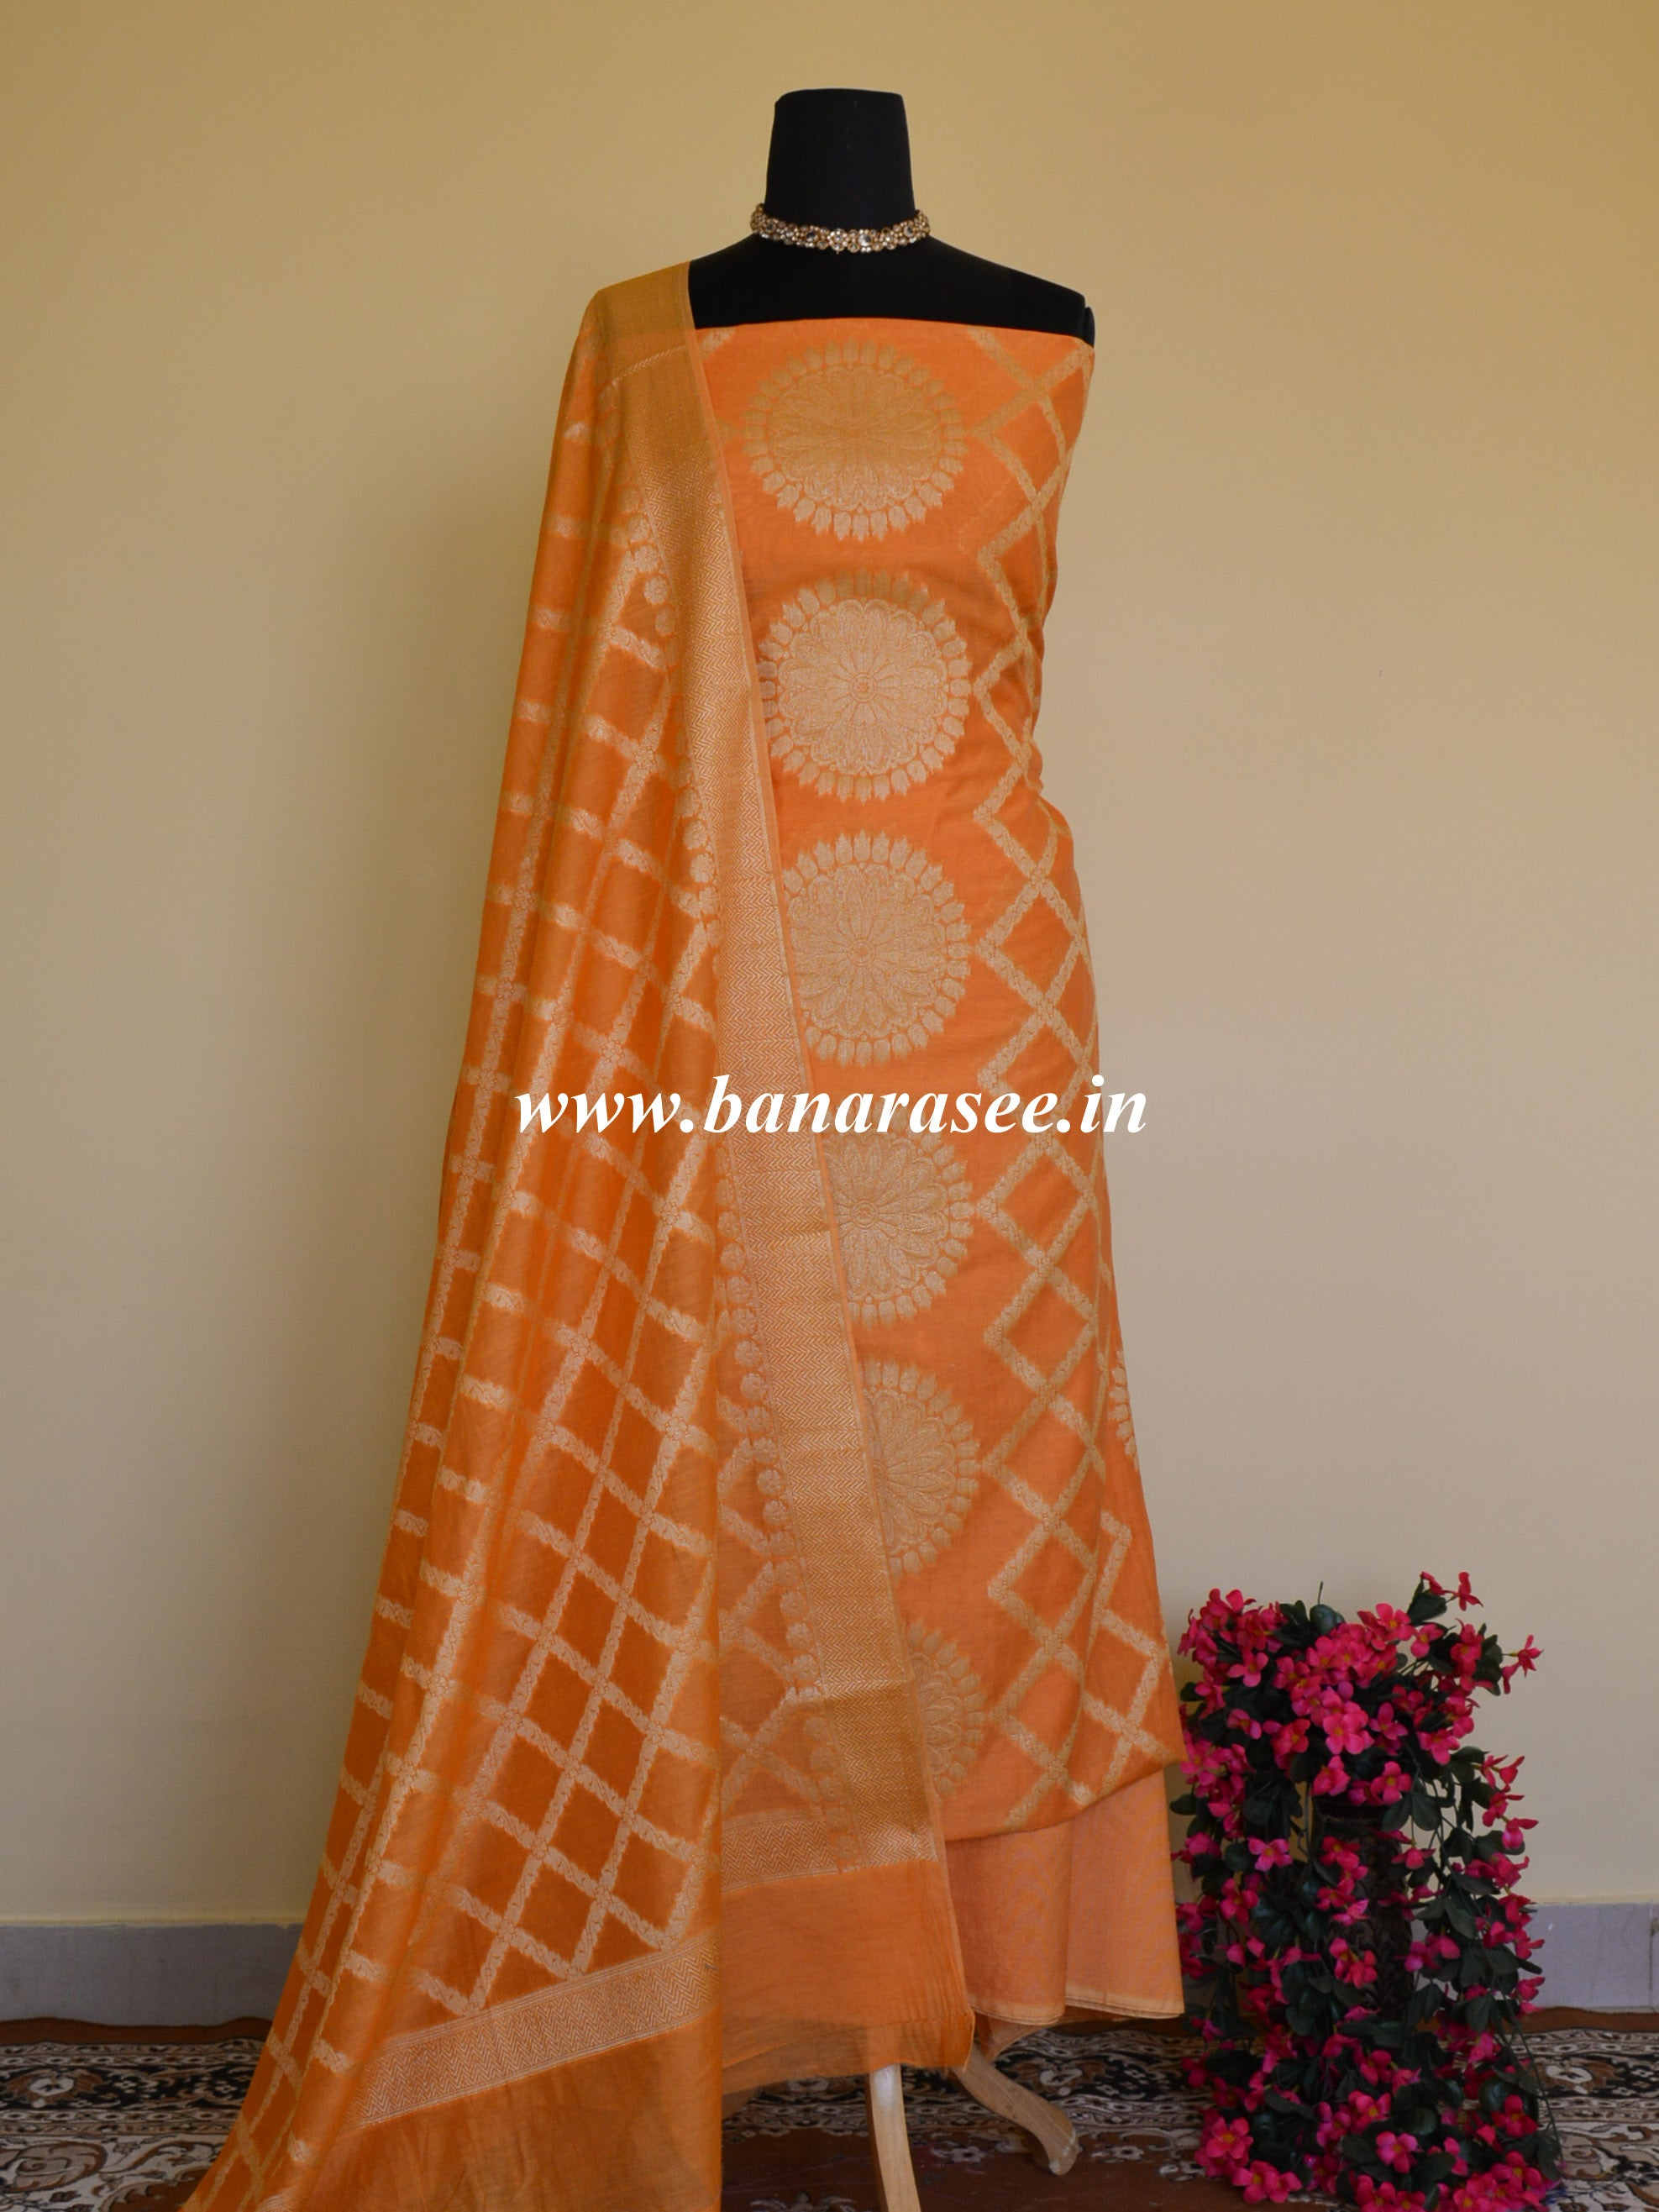 Banarasi Salwar Kameez Cotton Silk Woven Chakra Buta Design Fabric-Orange